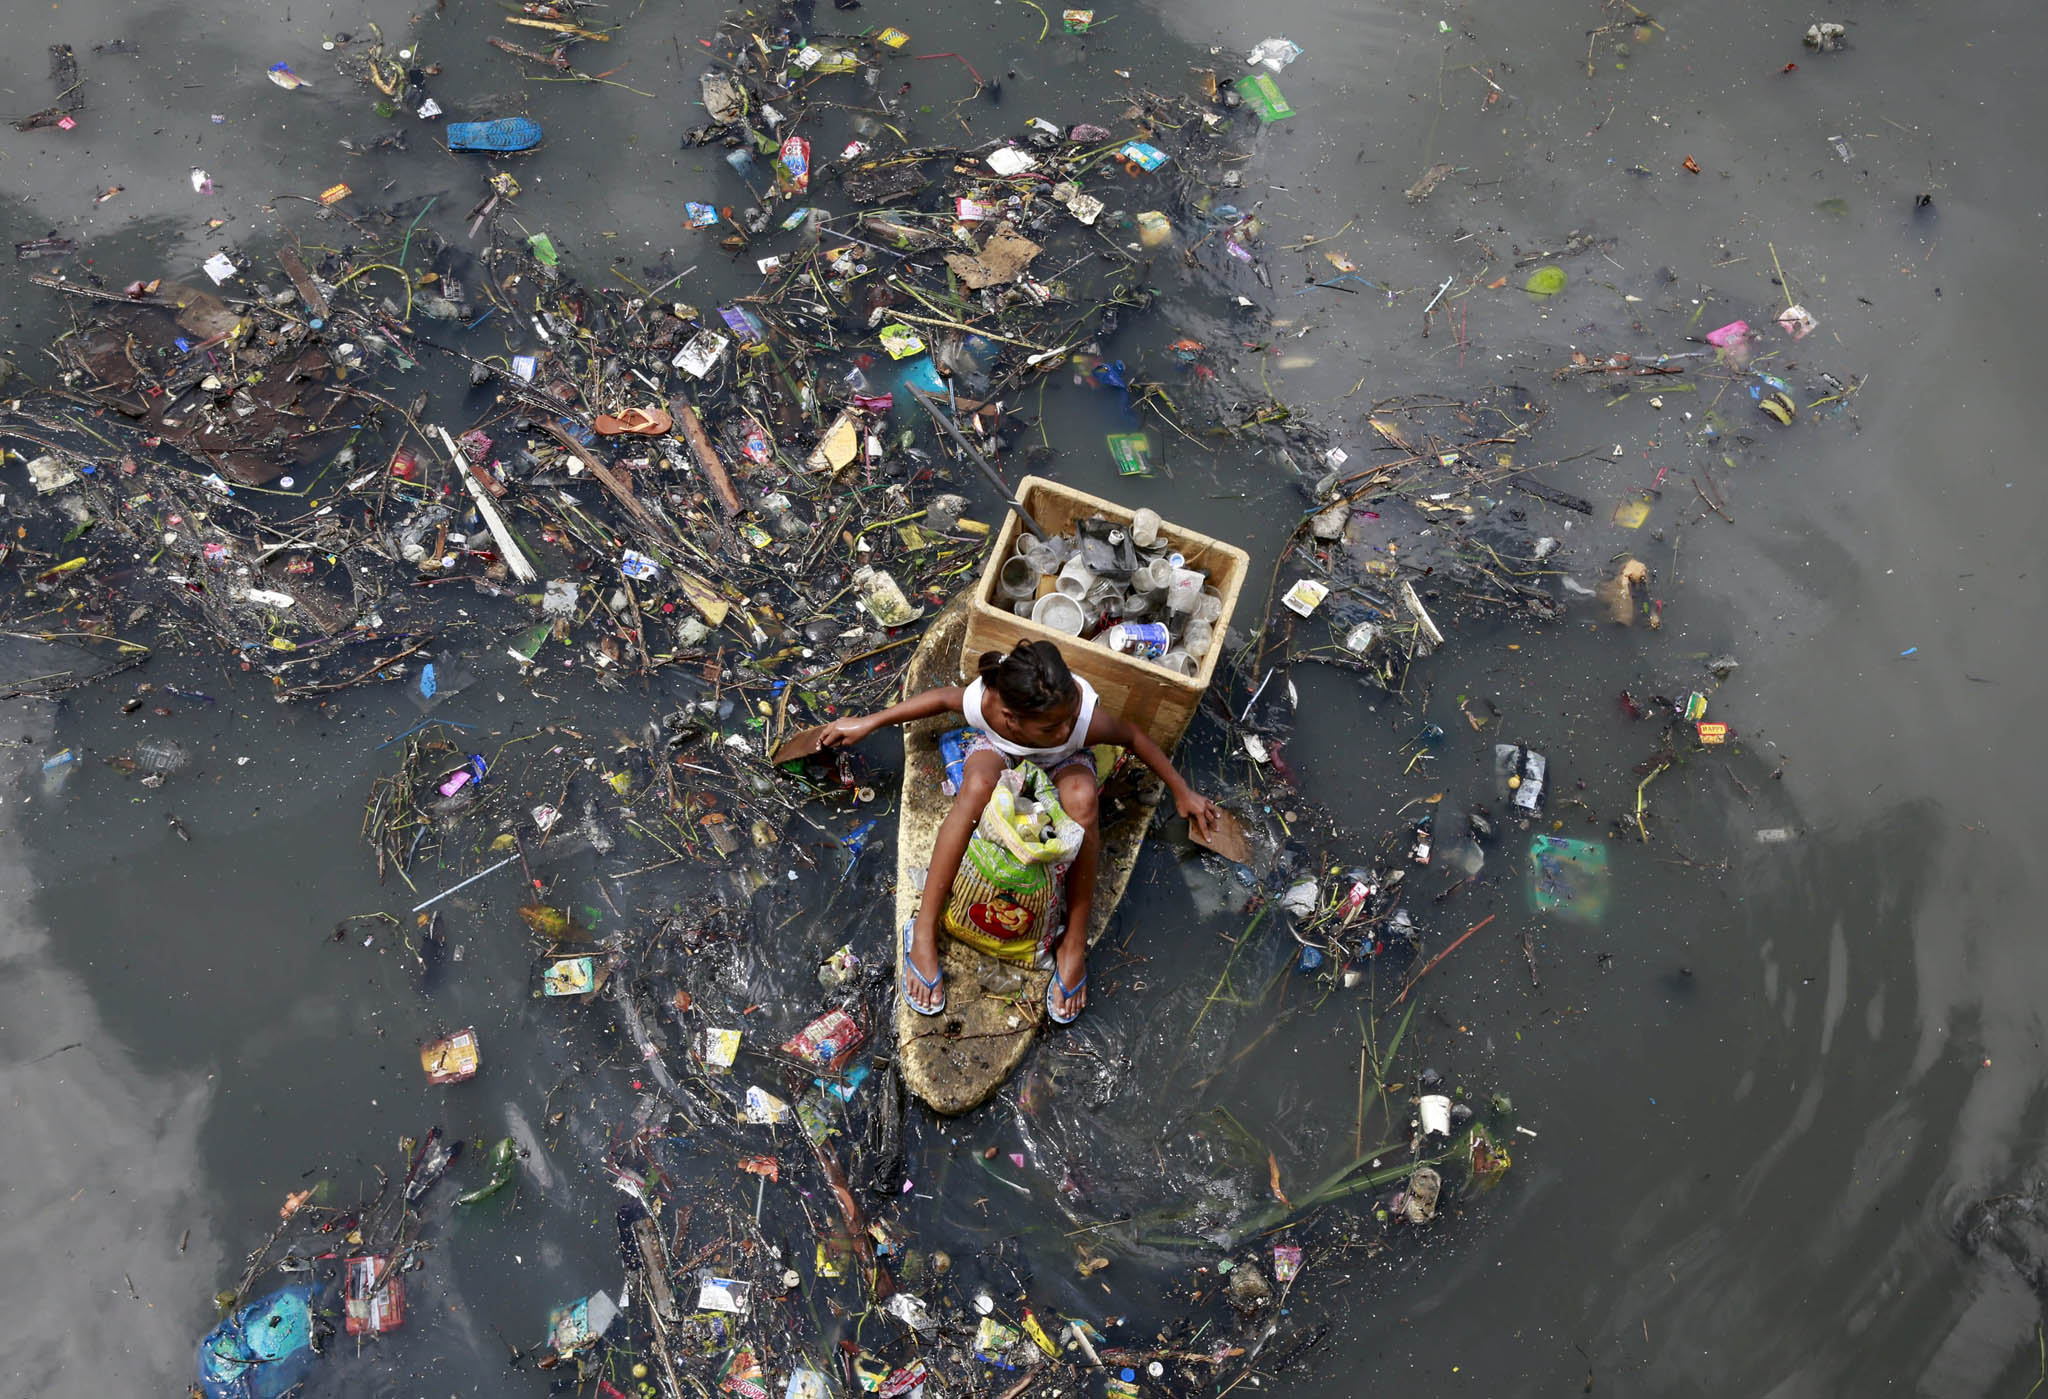 A girl sits on a makeshift styrofoam raft as she collects recyclable material from floating garbage in a polluted river at Navotas city, north of Manila